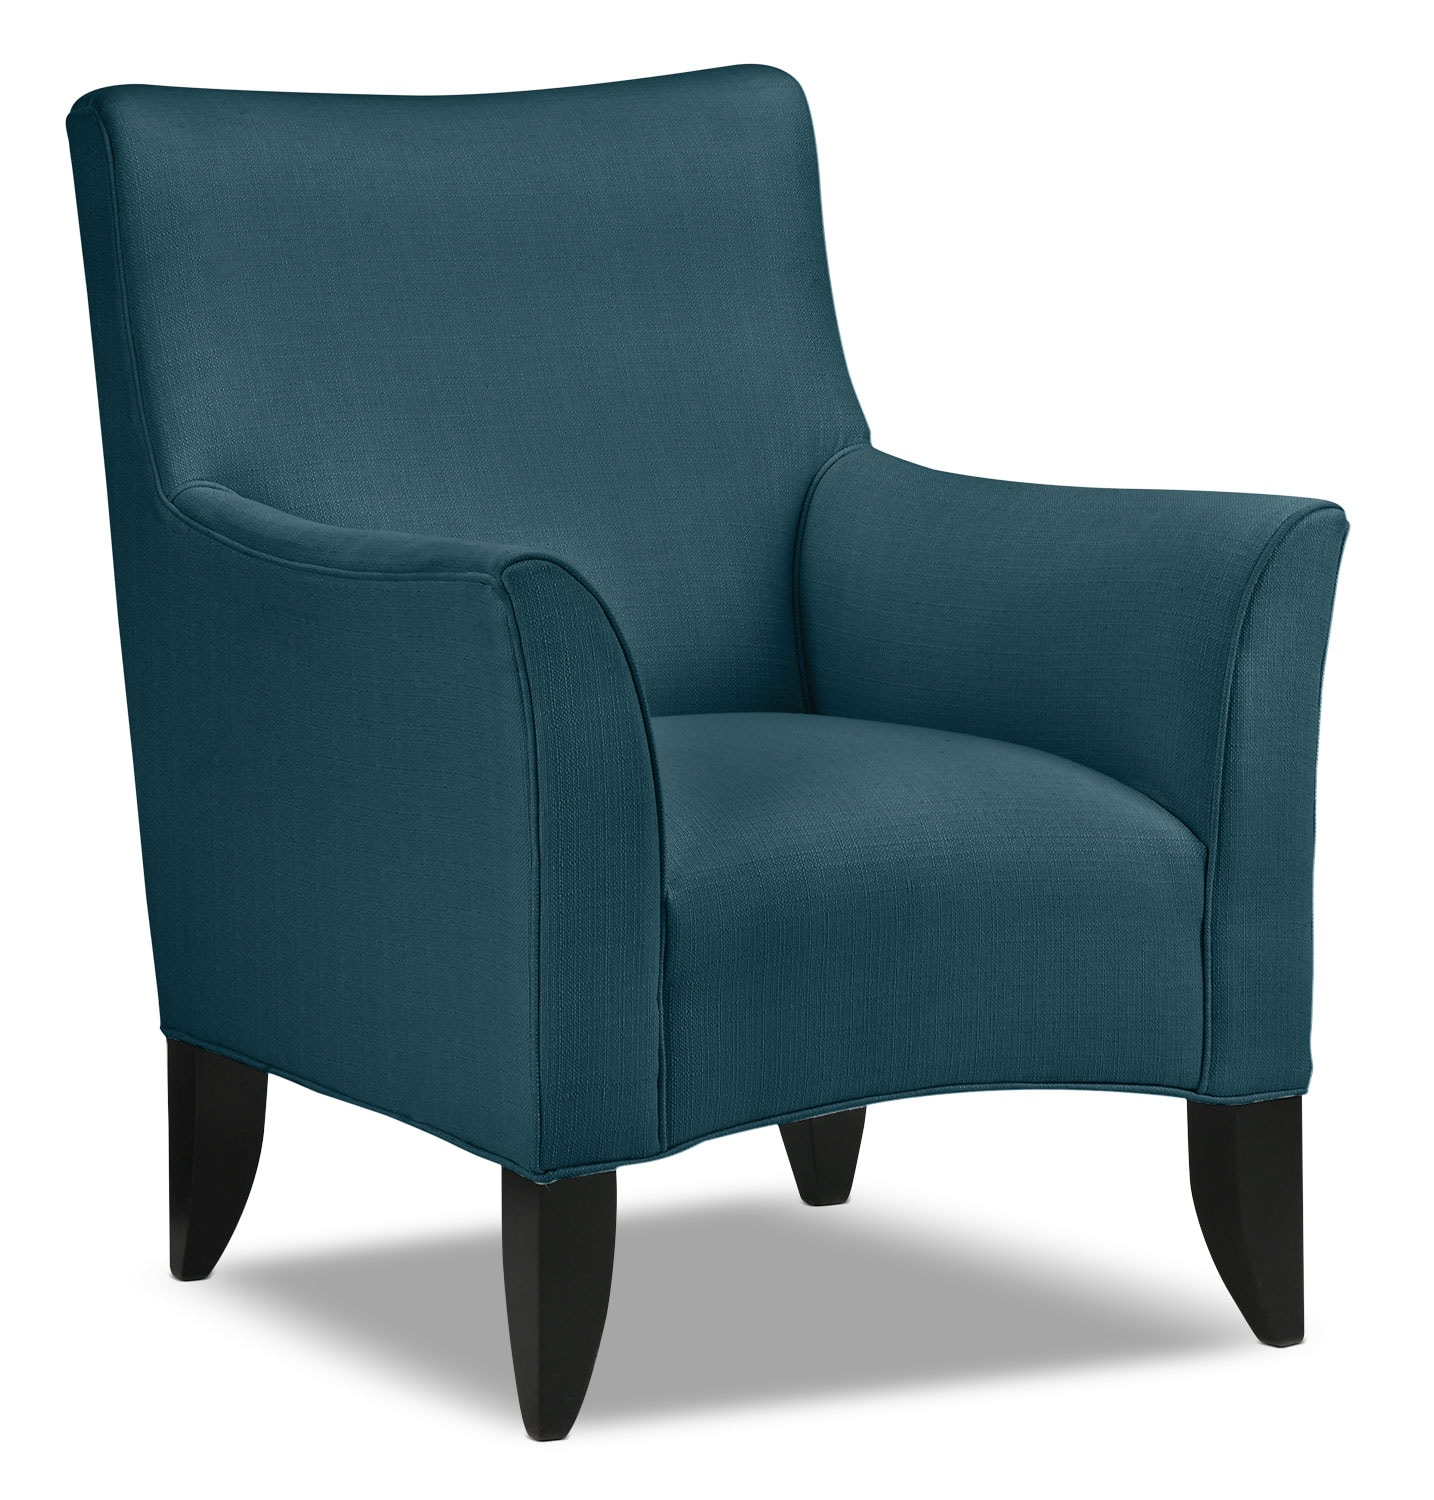 Klein Accent Chair - Azure